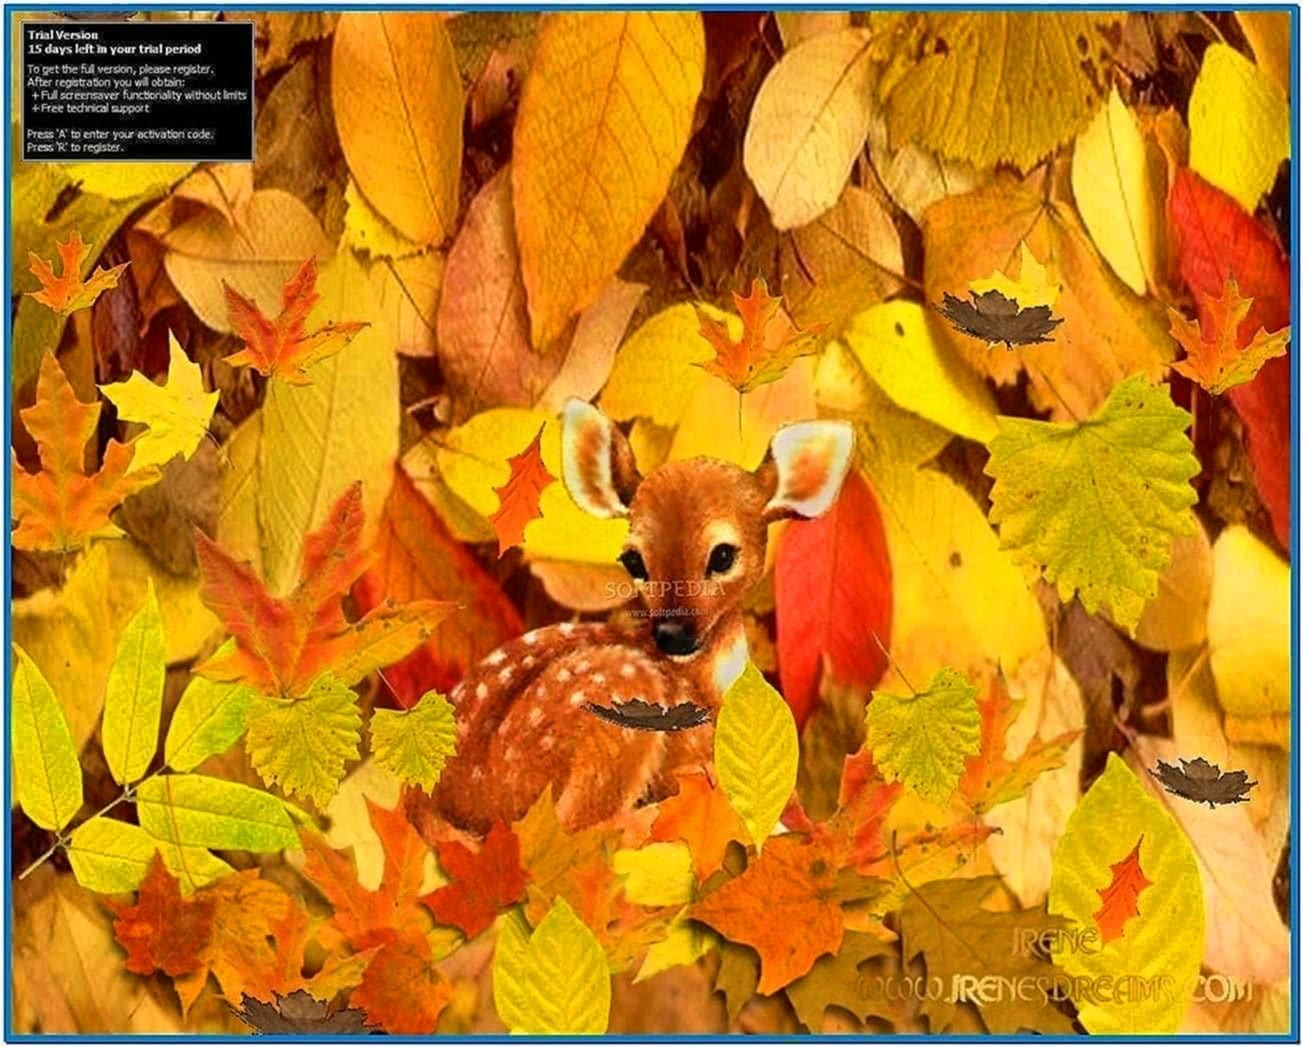 Animated Deer Screensaver